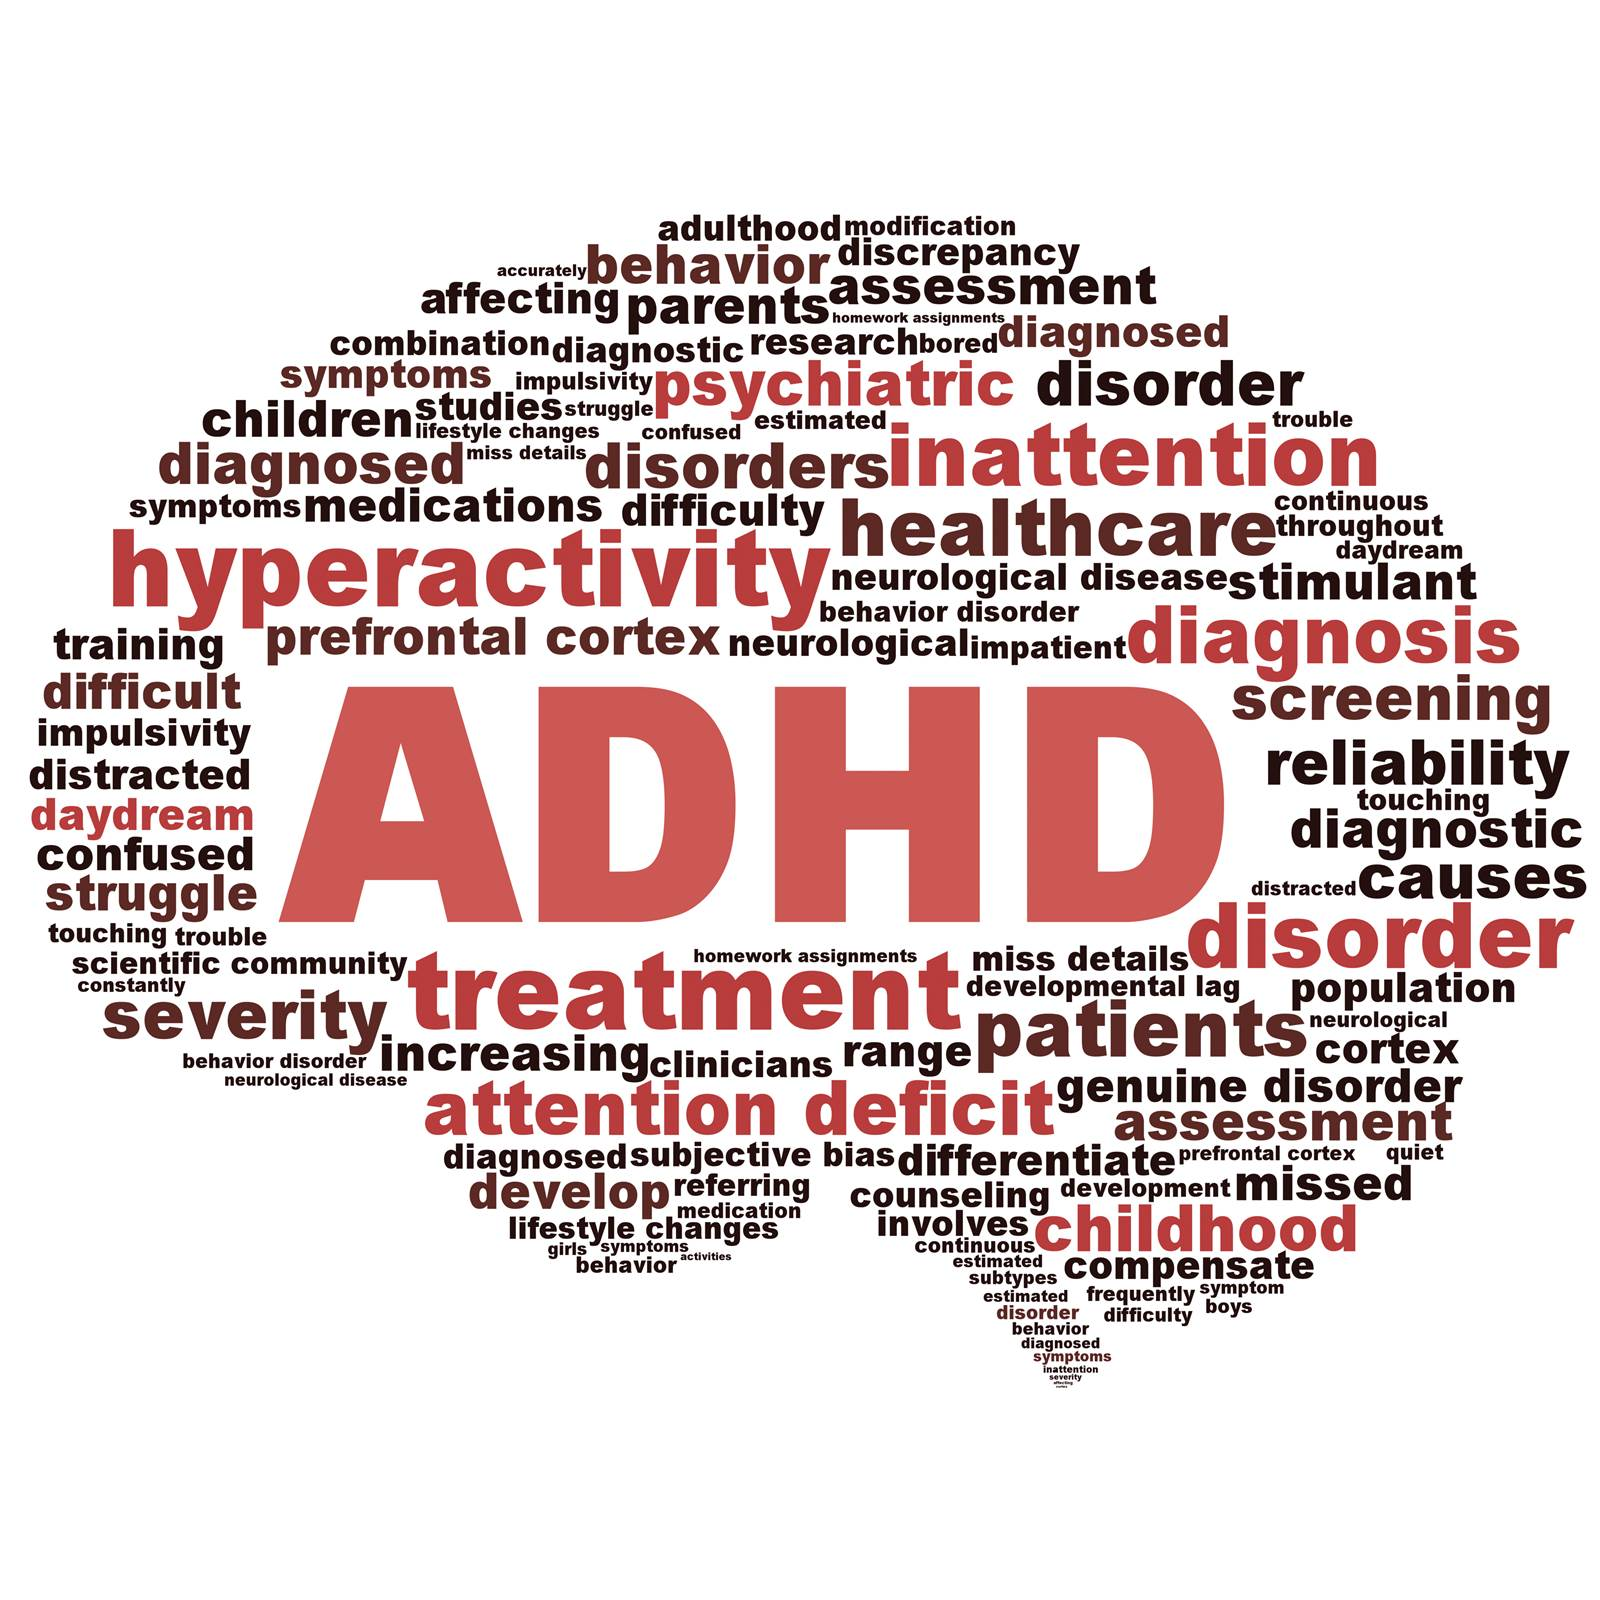 A Quick Guide to Recognizing Depression Symptoms in ADHD Children